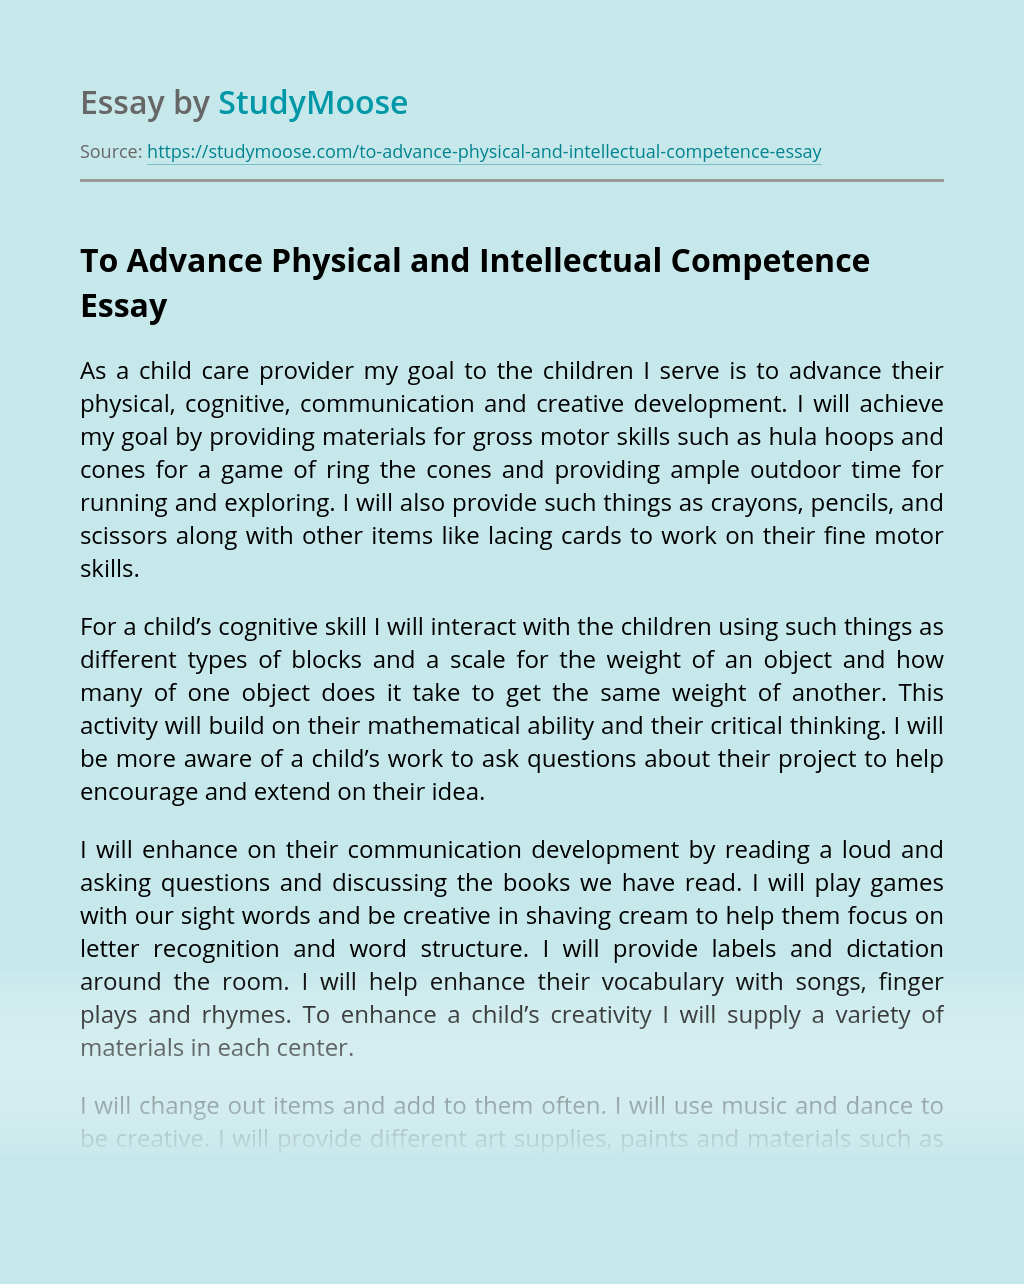 To Advance Physical and Intellectual Competence